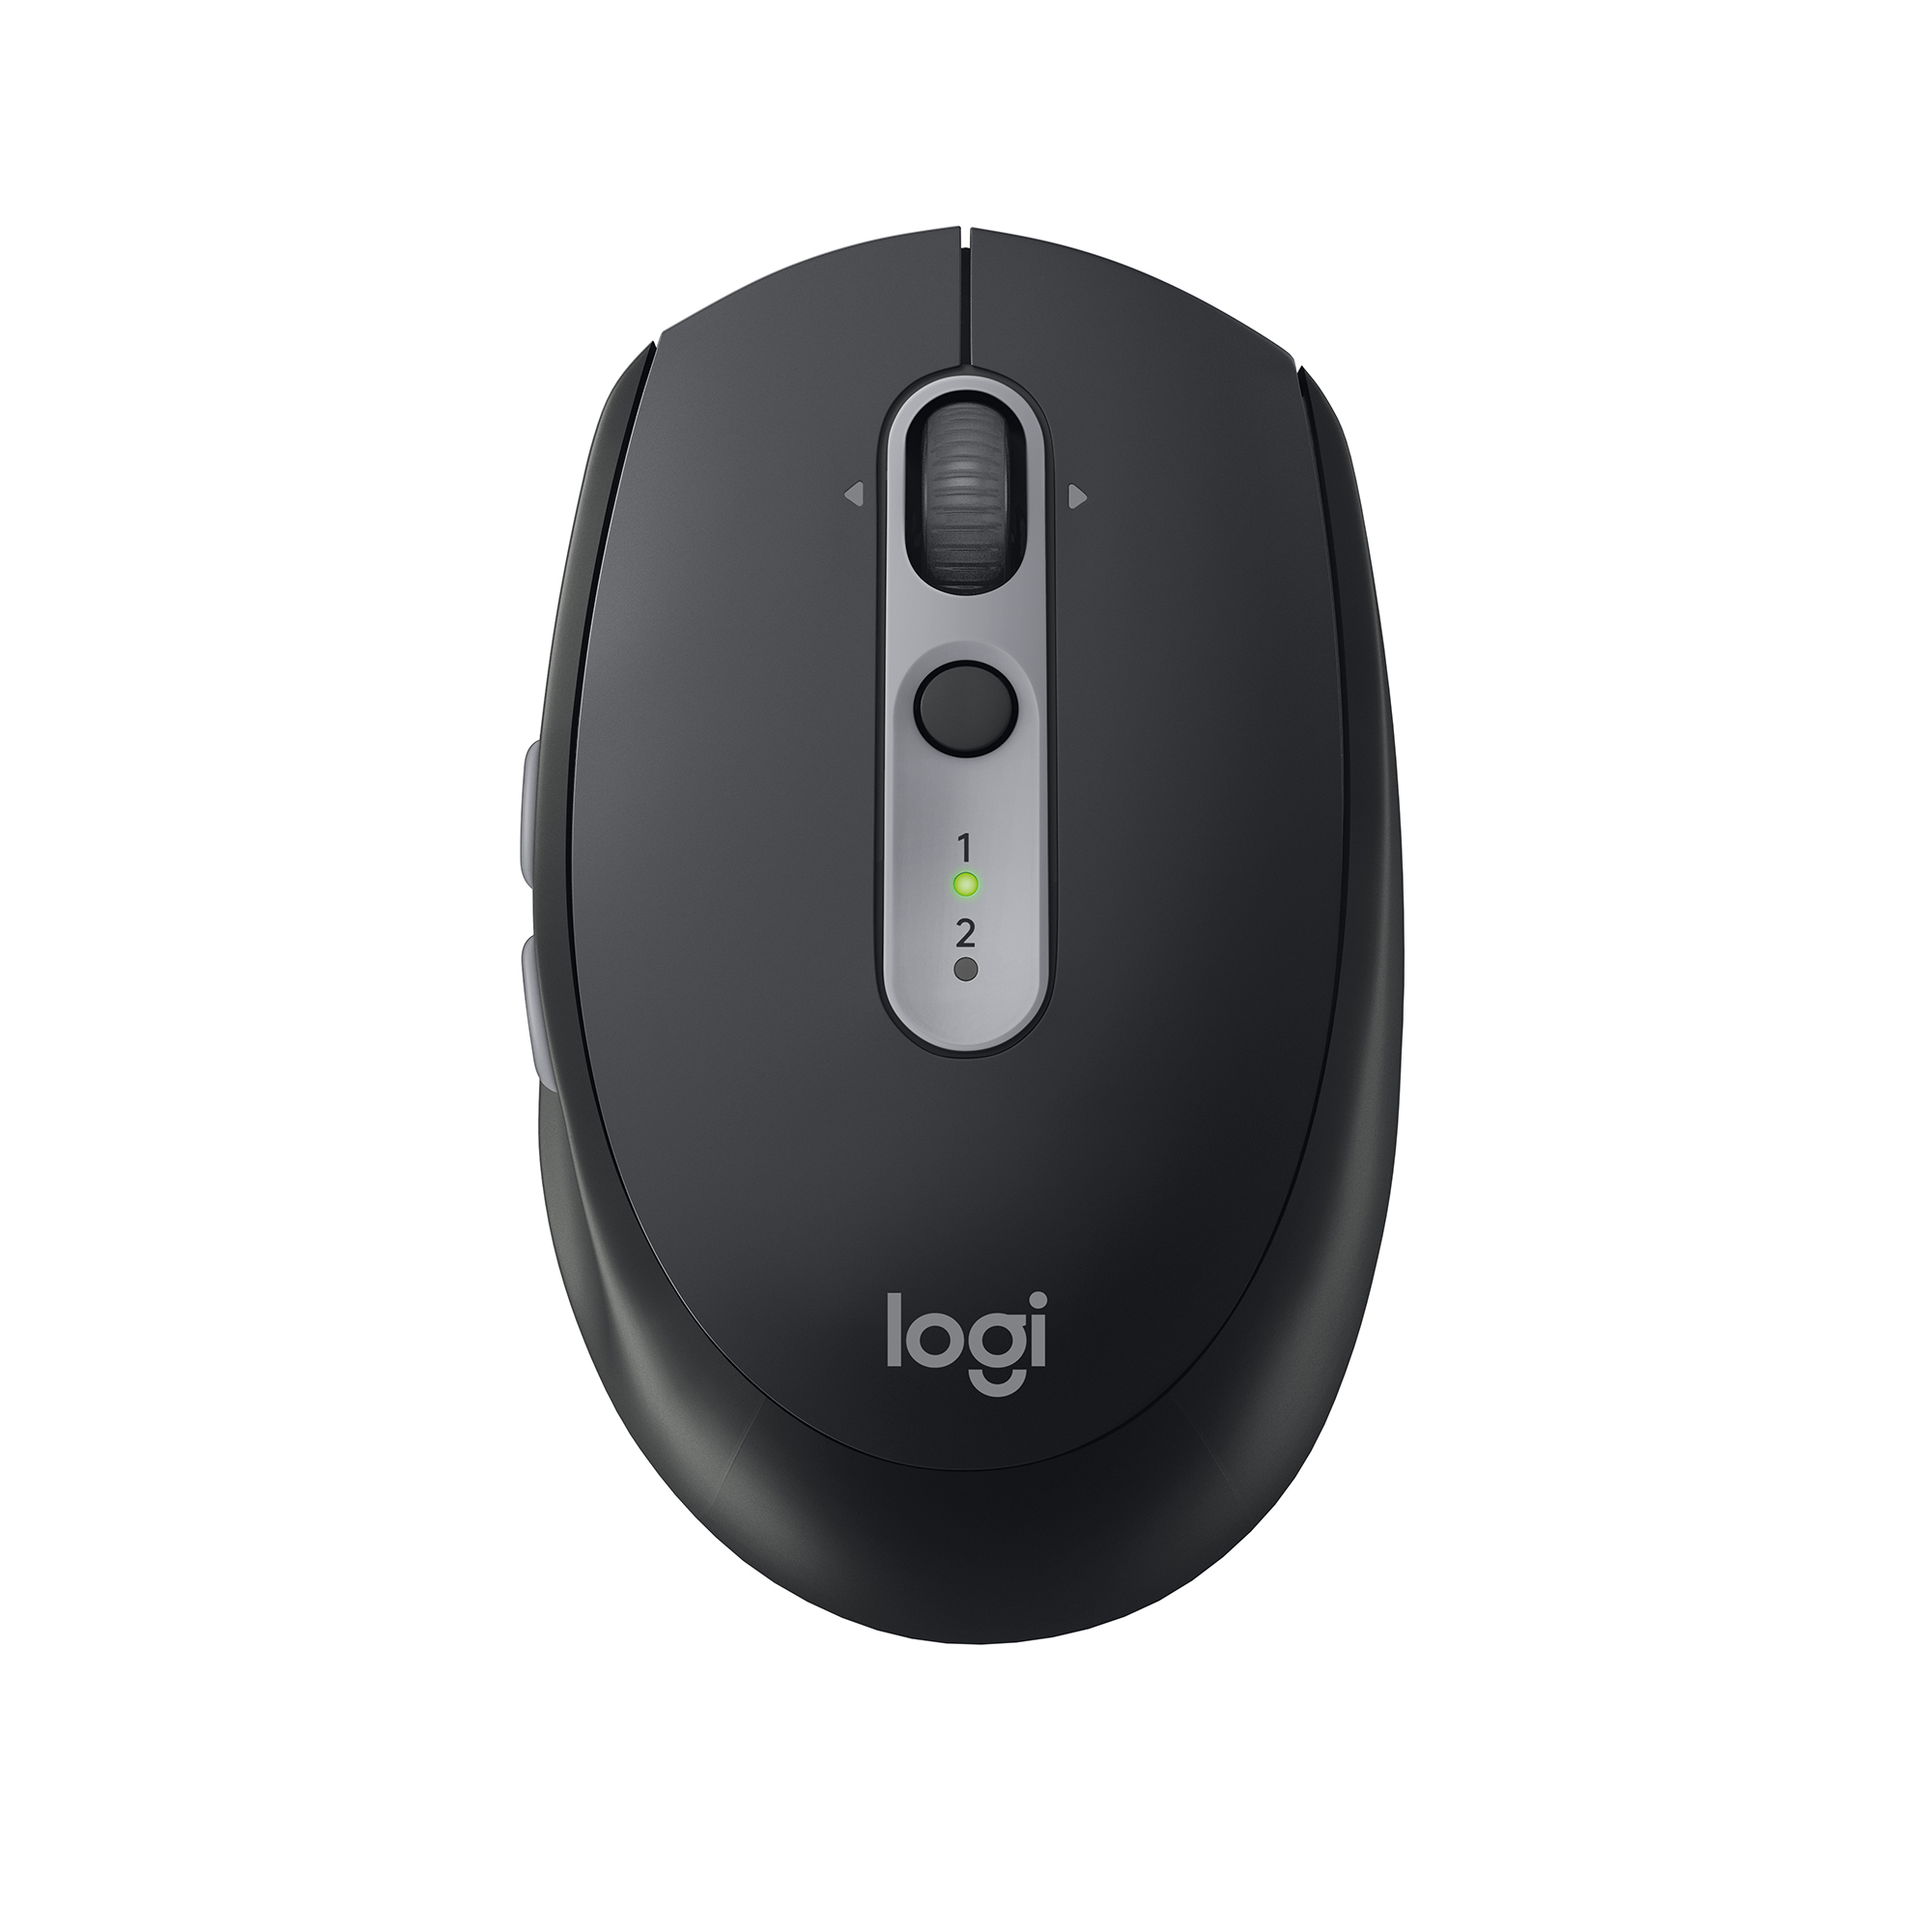 Computer mouse or trackballs Logitech M590 Silent Wireless Mouse Ref 910-005197